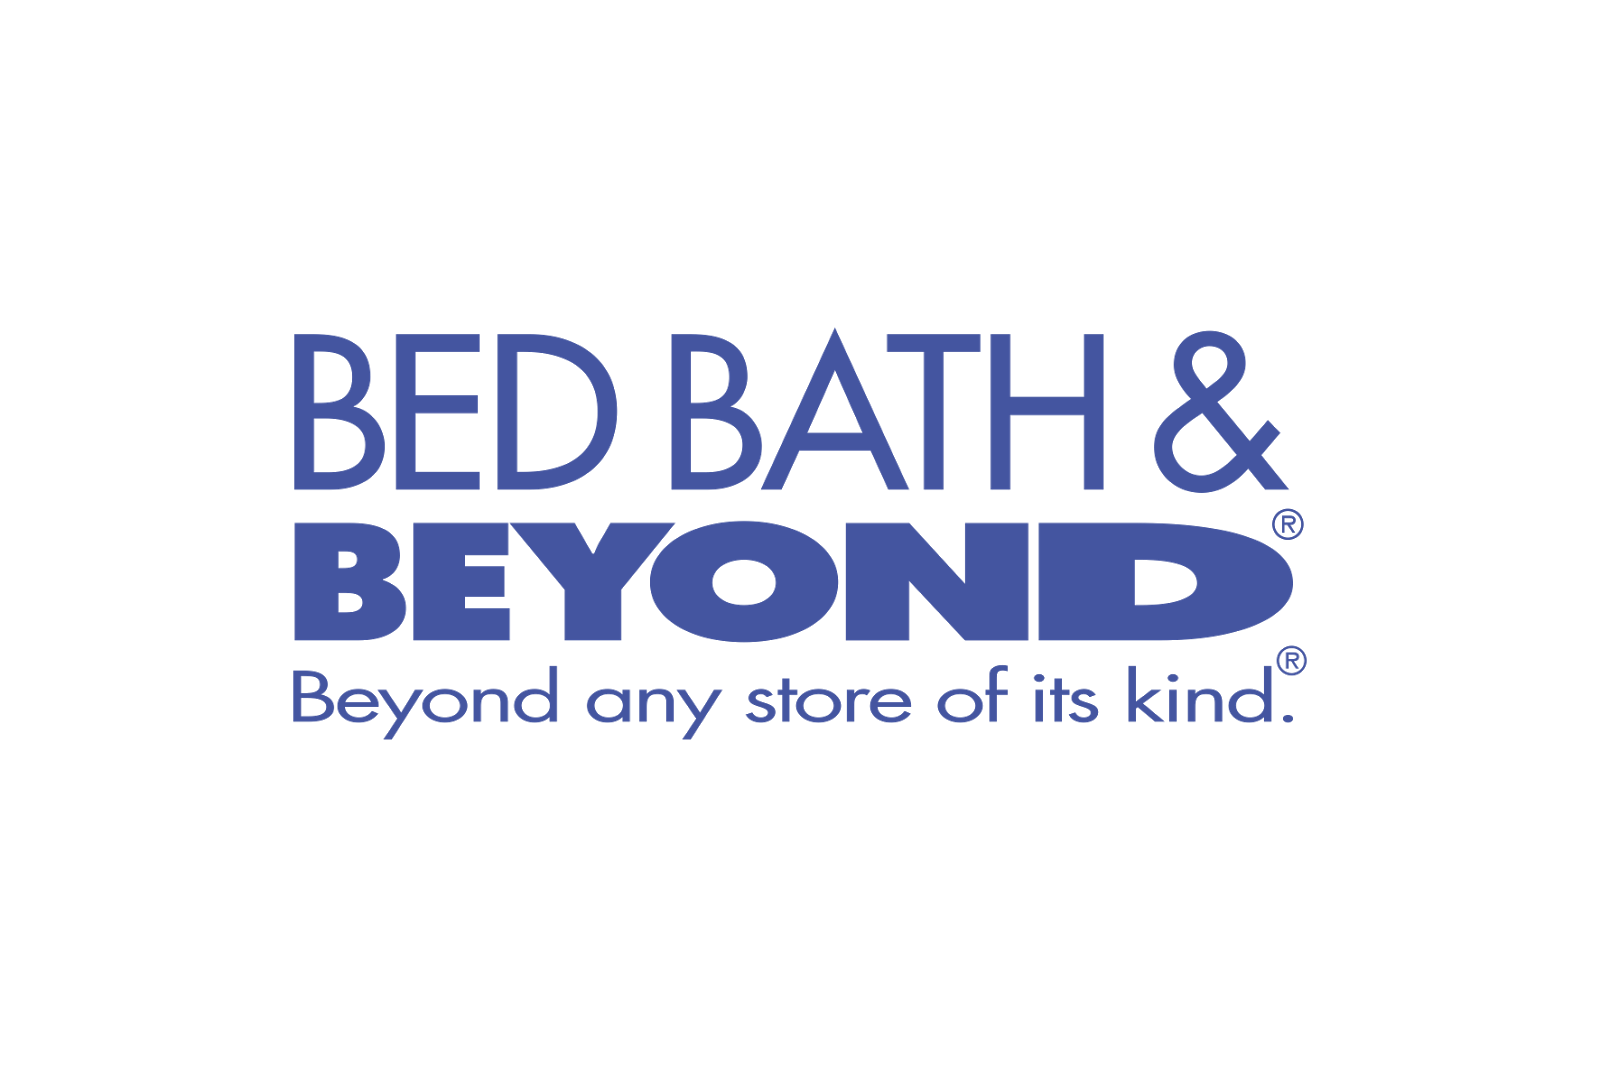 Bed bath beyond locations home decorators - Home decorators store locations property ...